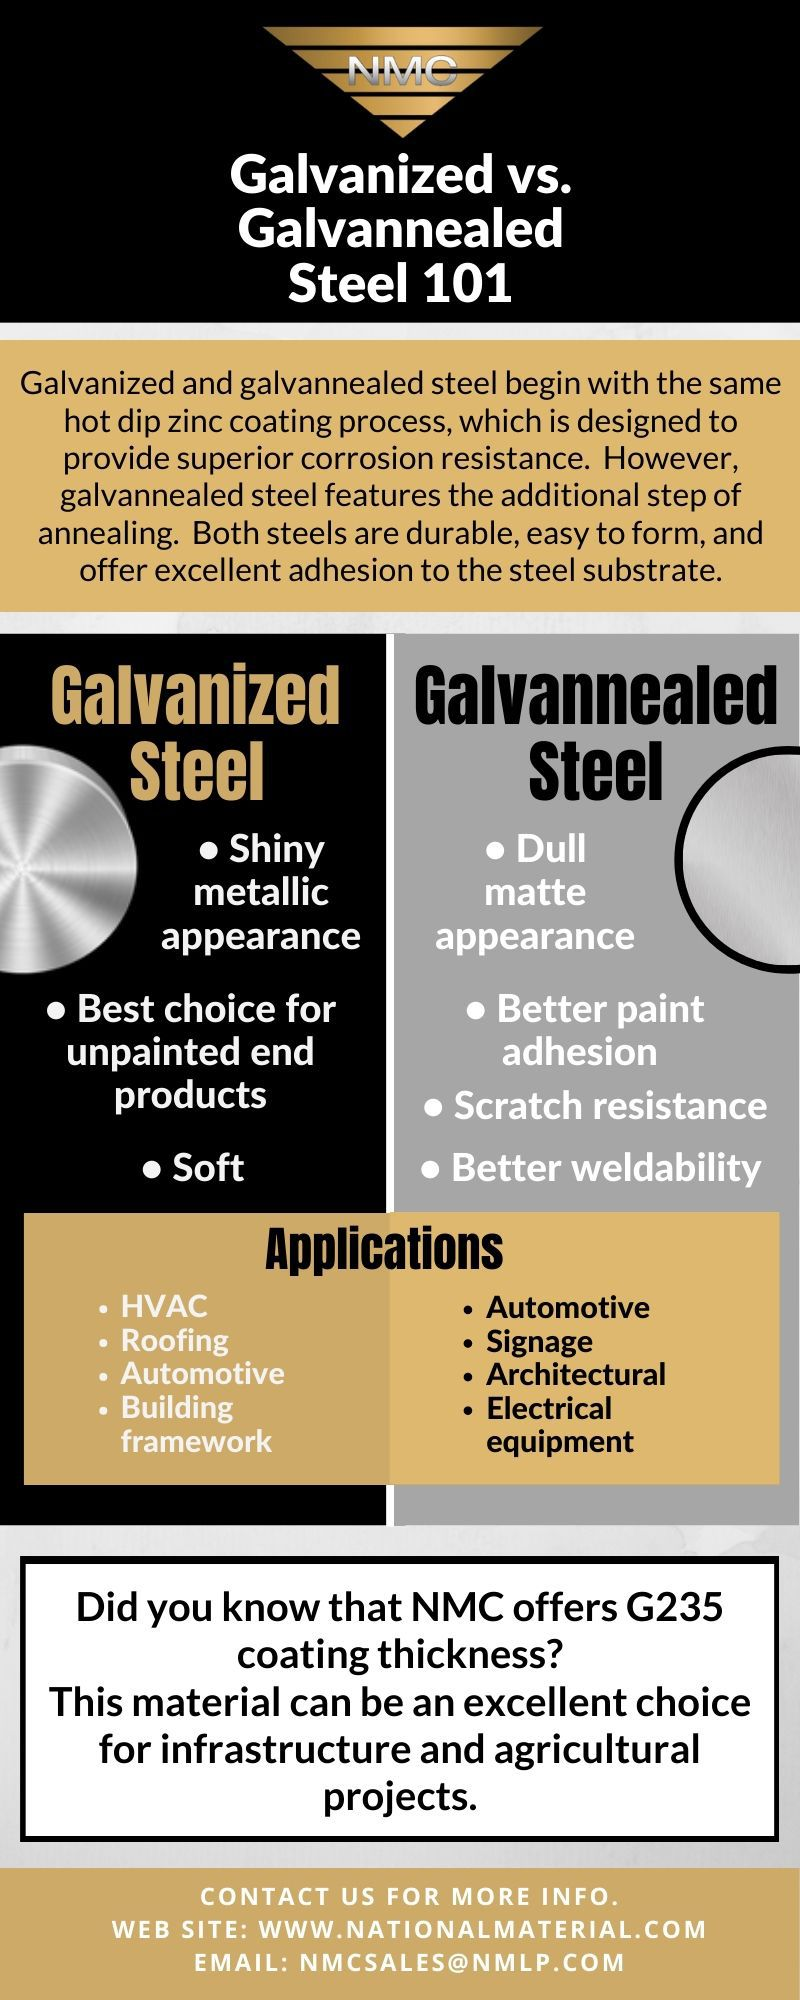 "Infographic highlighting differences and applications between Galvanizing vs. Galvannealing described in the article's written content, with an additional ""call out"" that reads, ""Did you know NMC provides G235 coating thickness, excellent for infrastructure and agricultural projects?"""